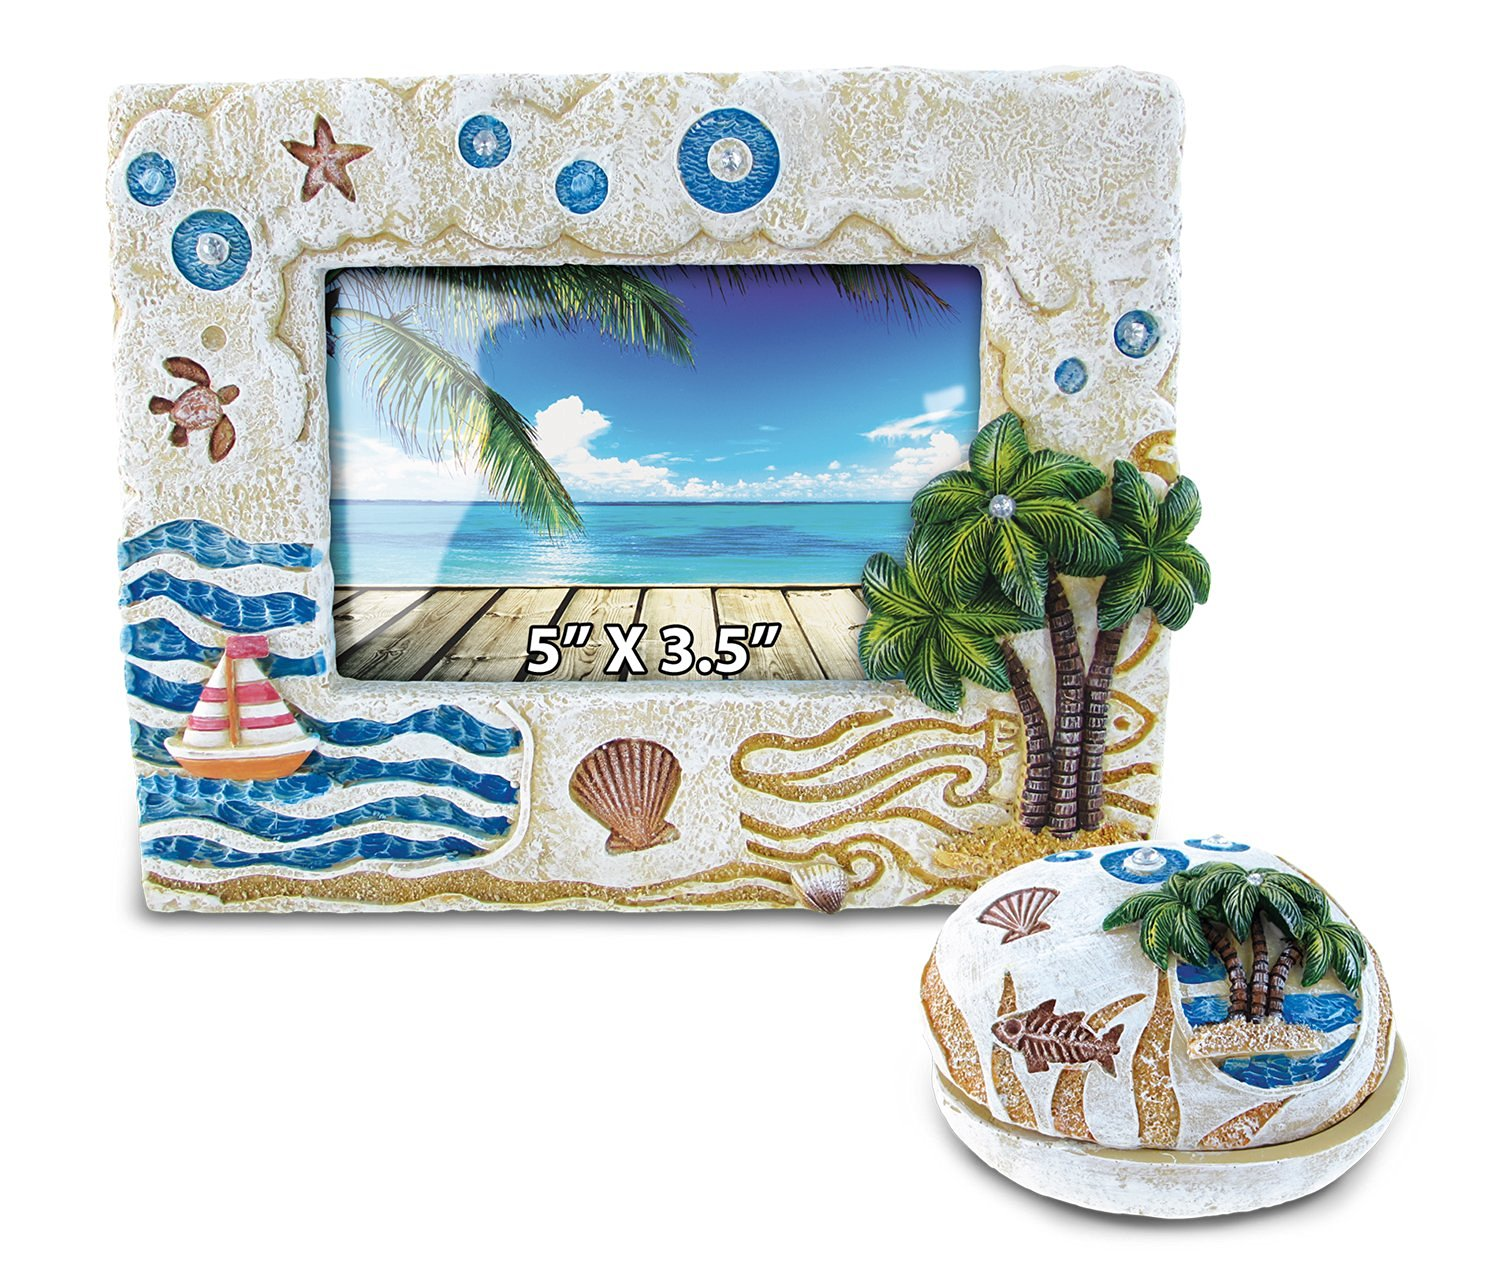 Puzzled Palm Tree Resin Stone Finish Collection including Picture/Photo Frame, and Jewelry Box - Picture Size 5 by 3 - Unique Elegant Gift and Souvenir